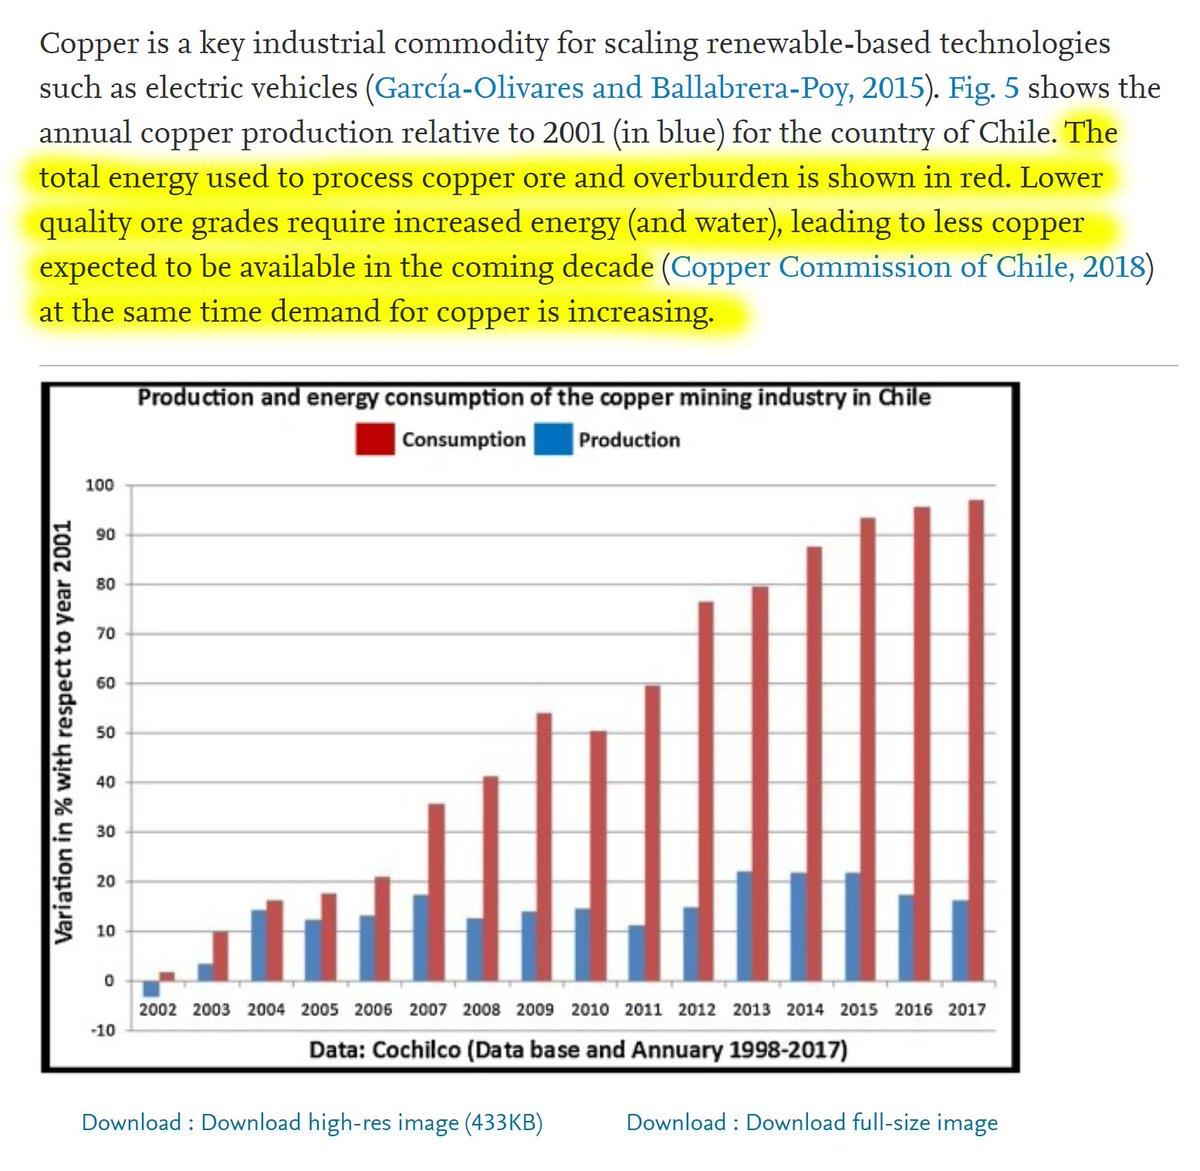 """29/60 """"The total energy used to process copper ore and overburden is shown in red. Lower quality ore grades require increased energy (and water), leading to less copper expected to be available in the coming decade at the same time demand for copper is increasing."""""""